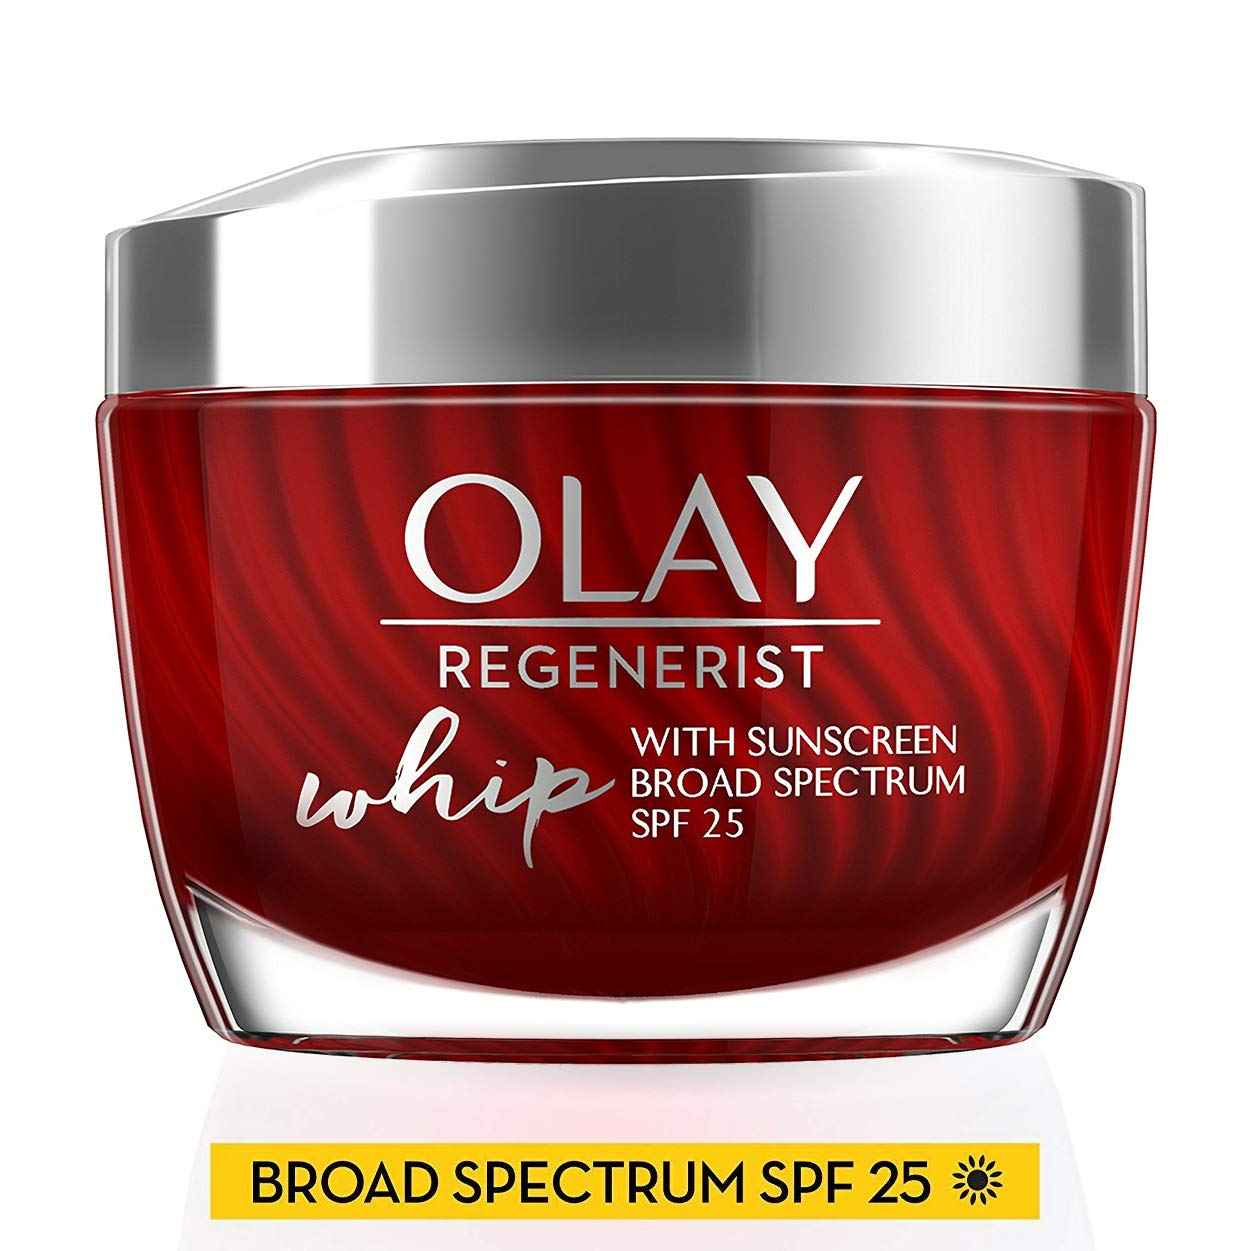 Light Face Moisturizer with SPF 25 by Olay Regenerist Whip with Collagen Peptides Anti-Aging Face Cream 1.7 Oz, 2 Month Supply